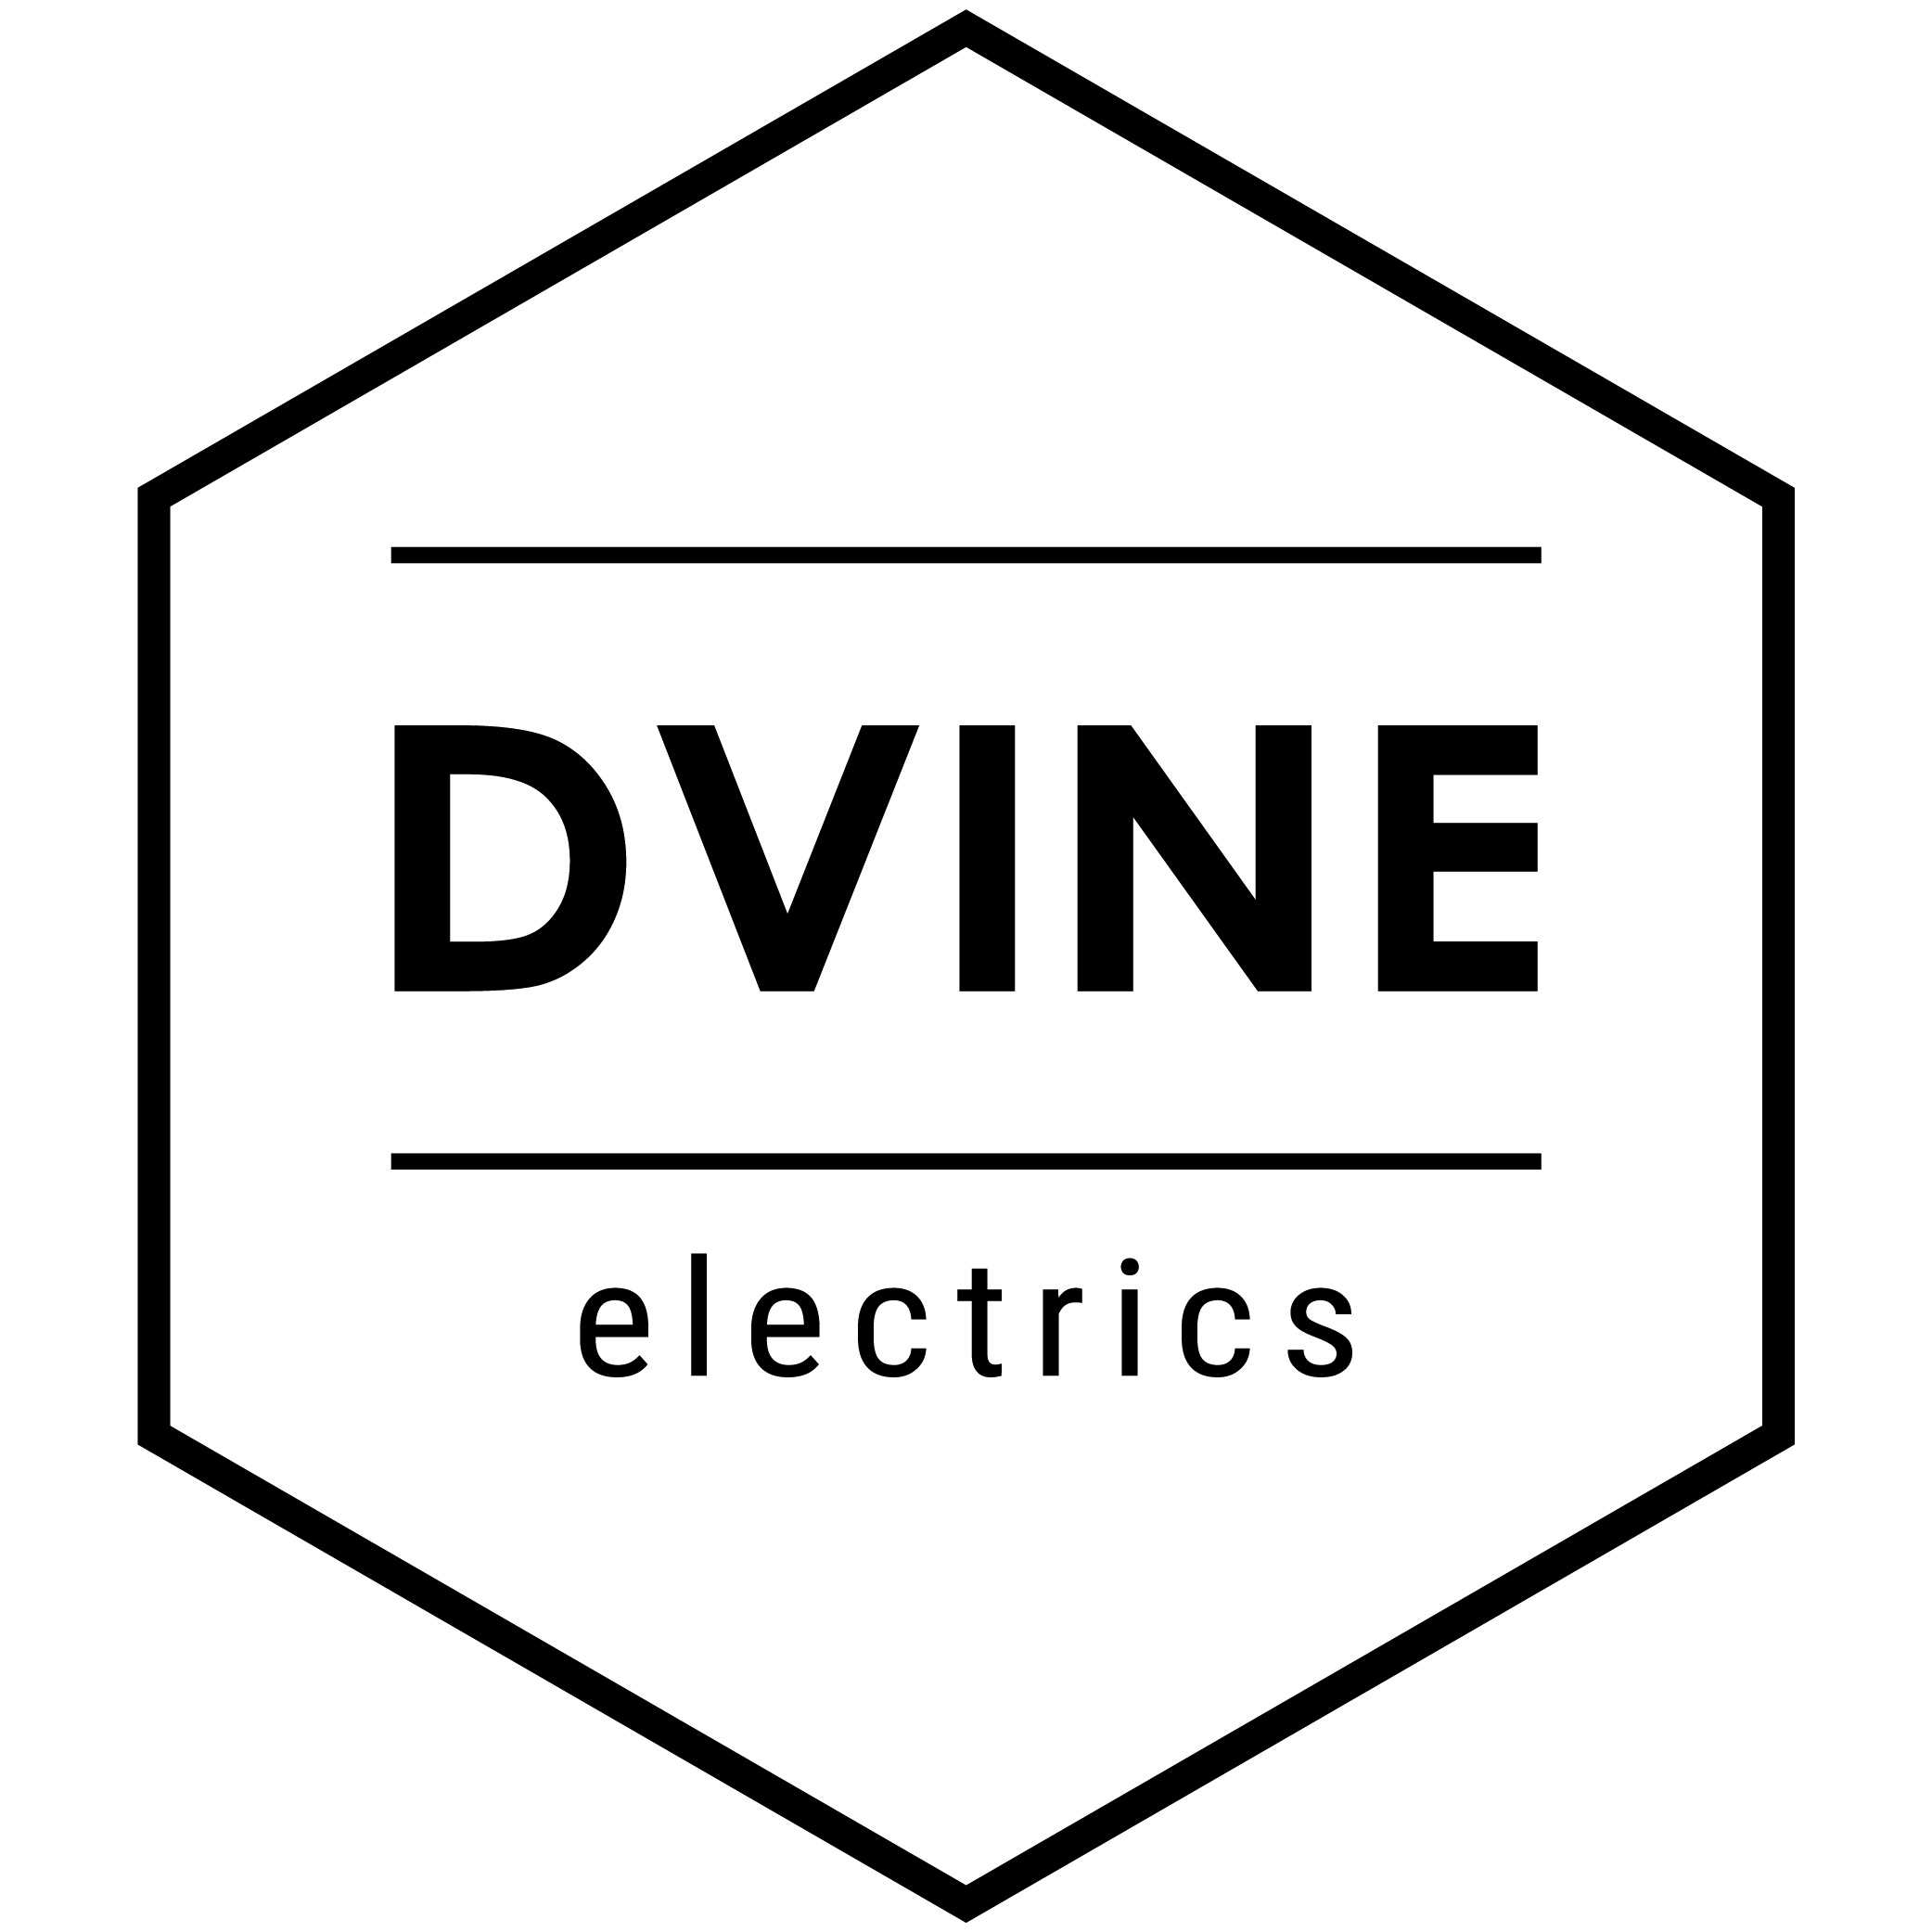 Dvine Electrics Pty Ltd